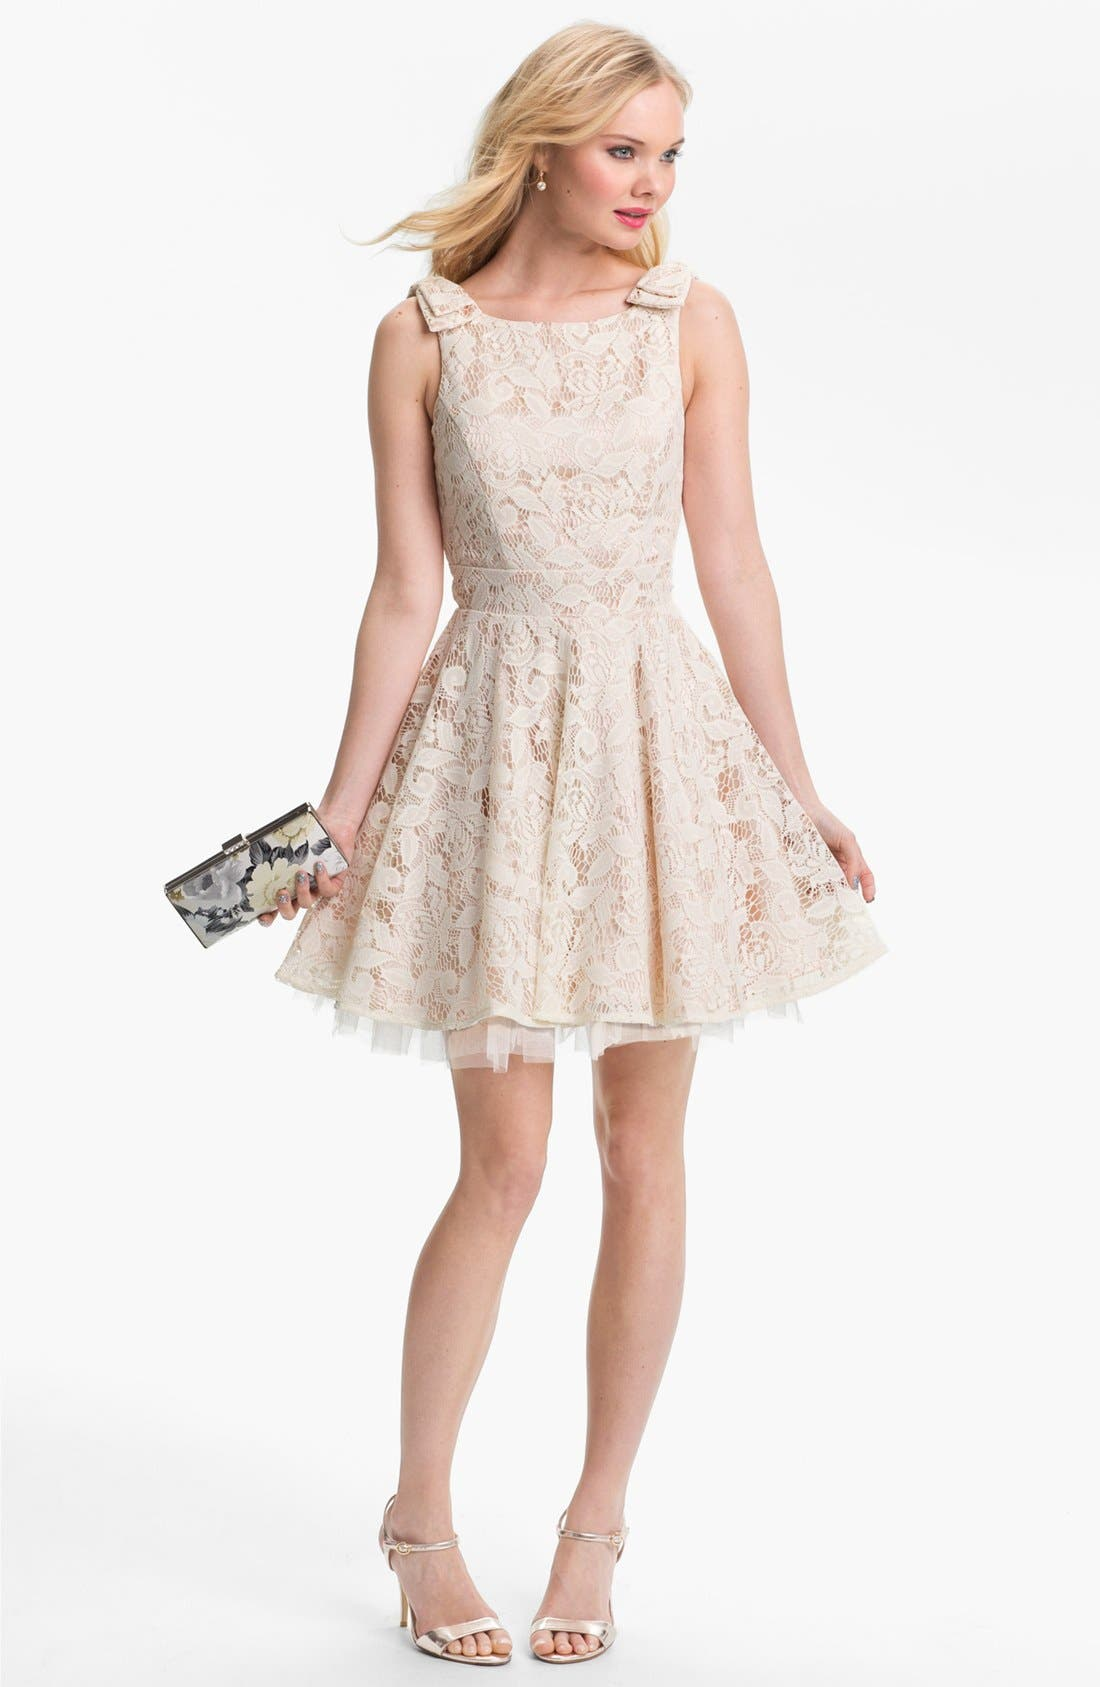 Main Image - Way-In Lace Skater Dress & Accessories